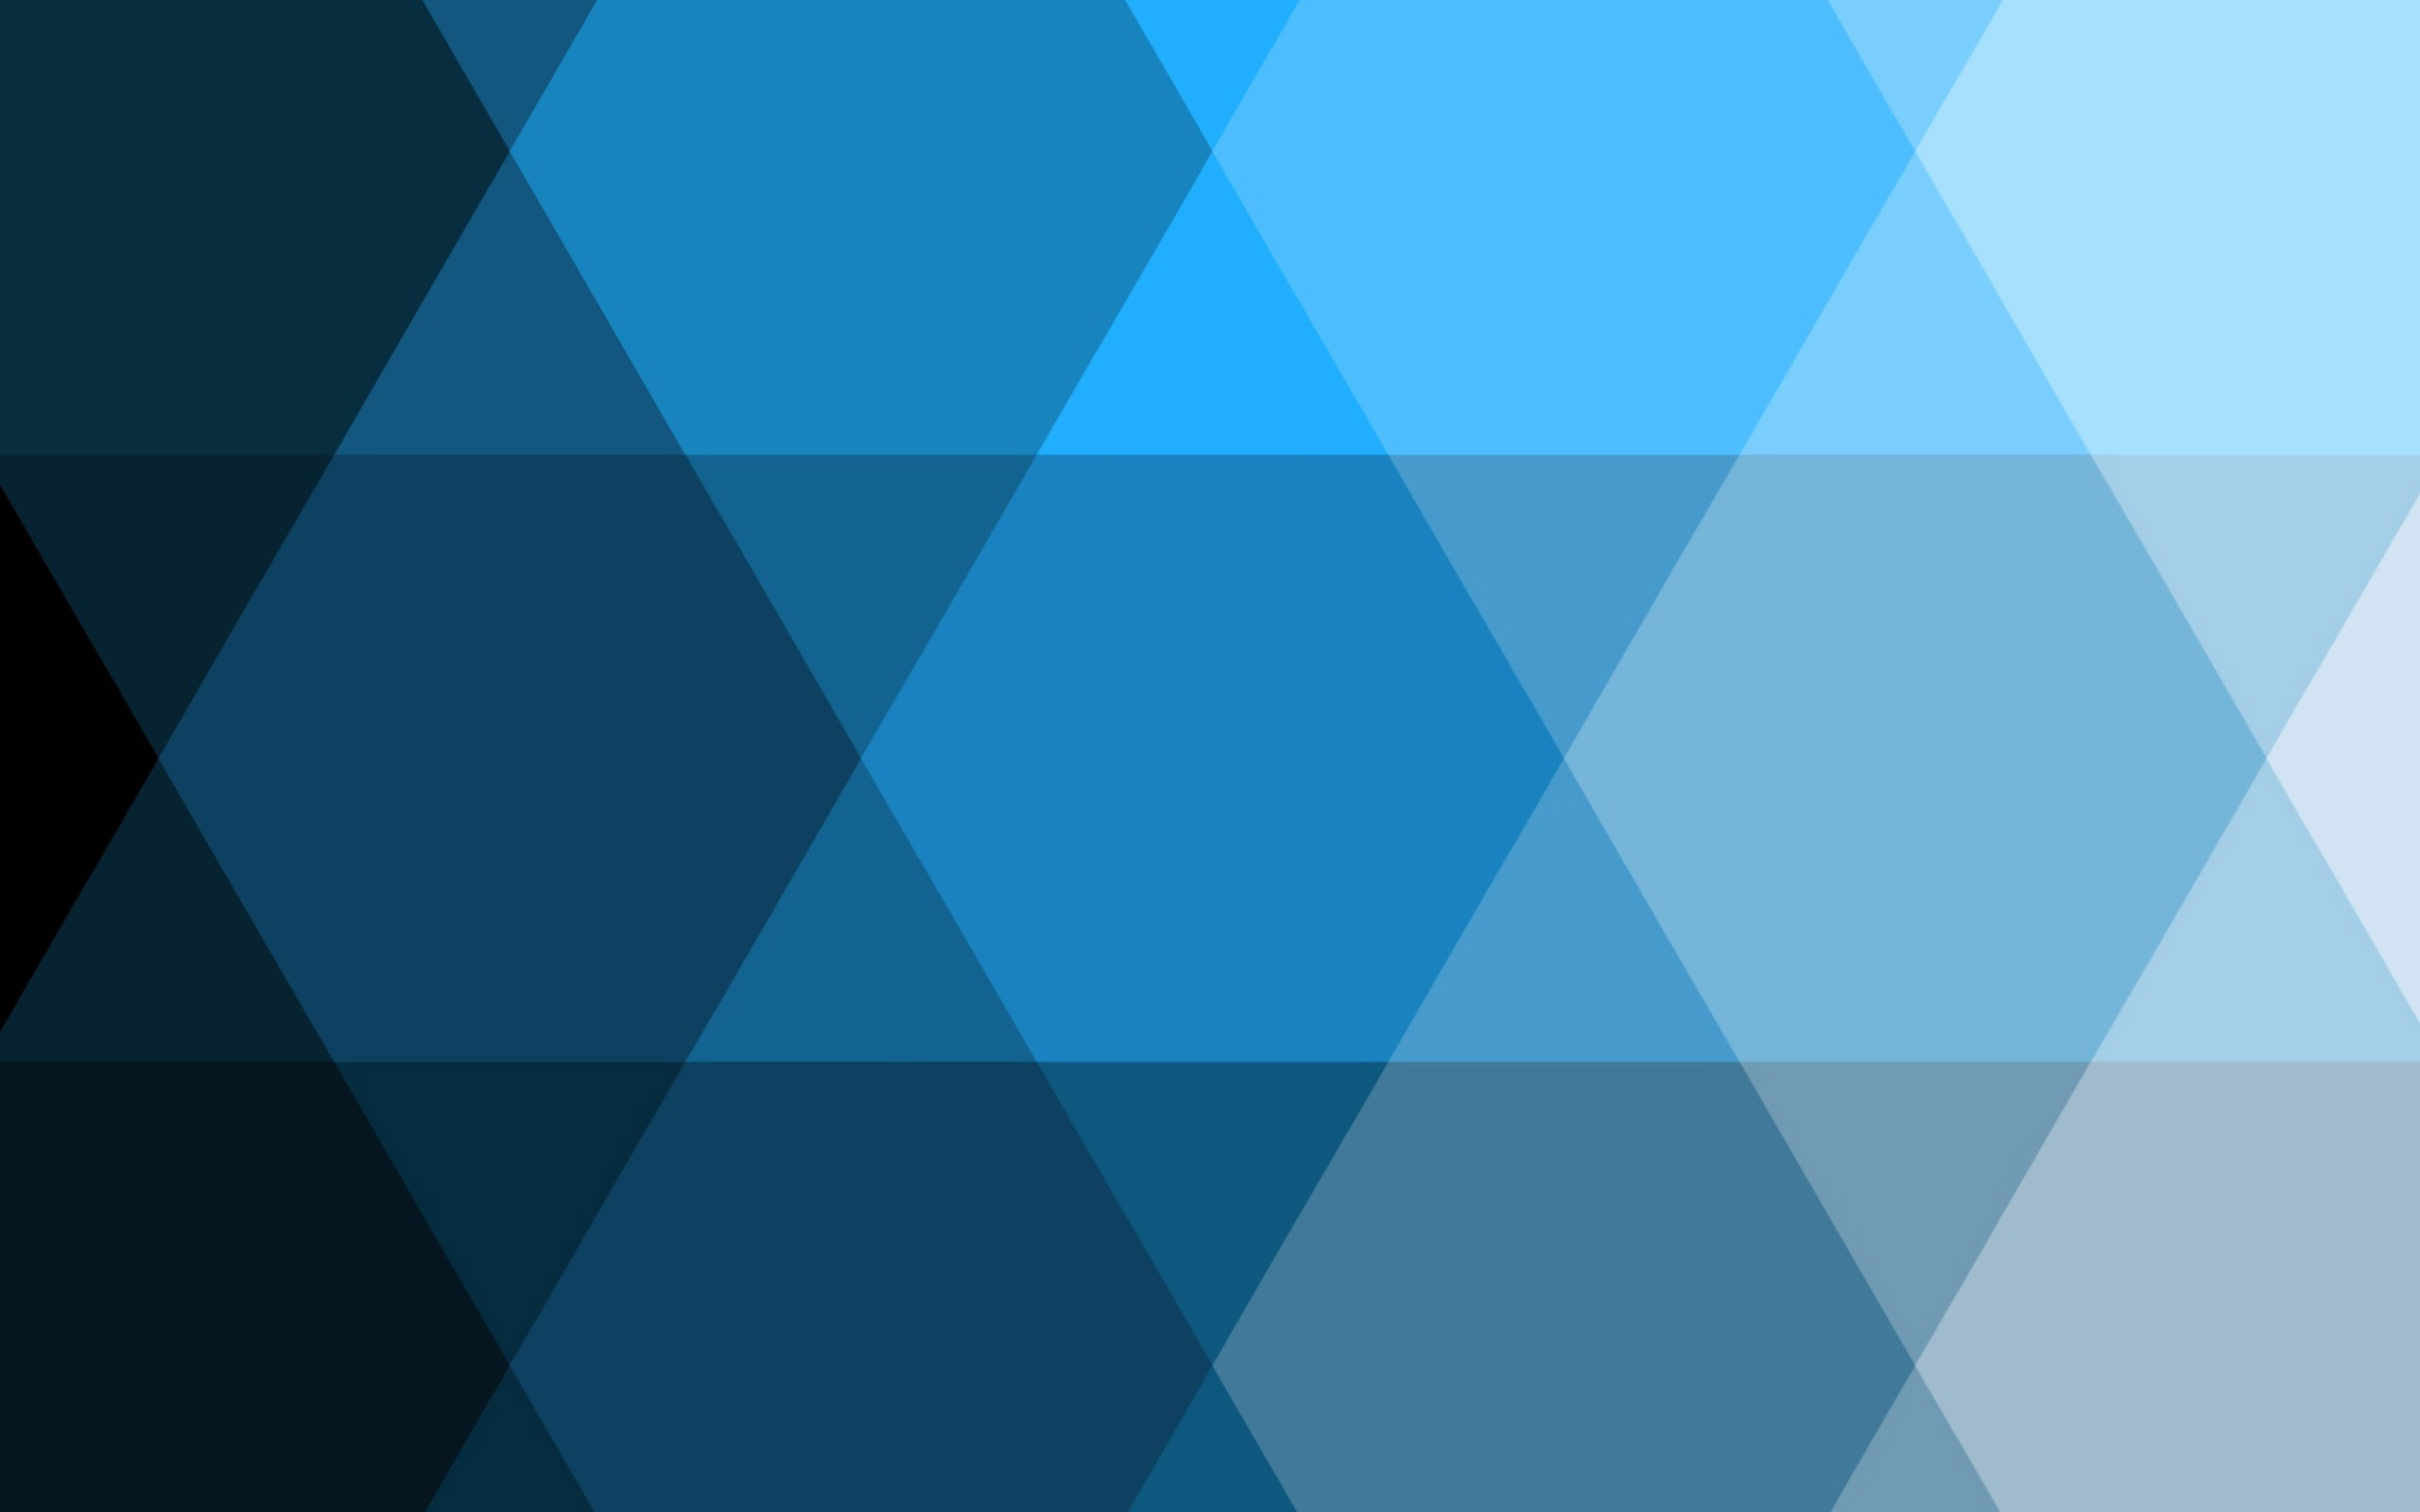 If you want more wallpapers with Material Design you can visit these 2560x1600